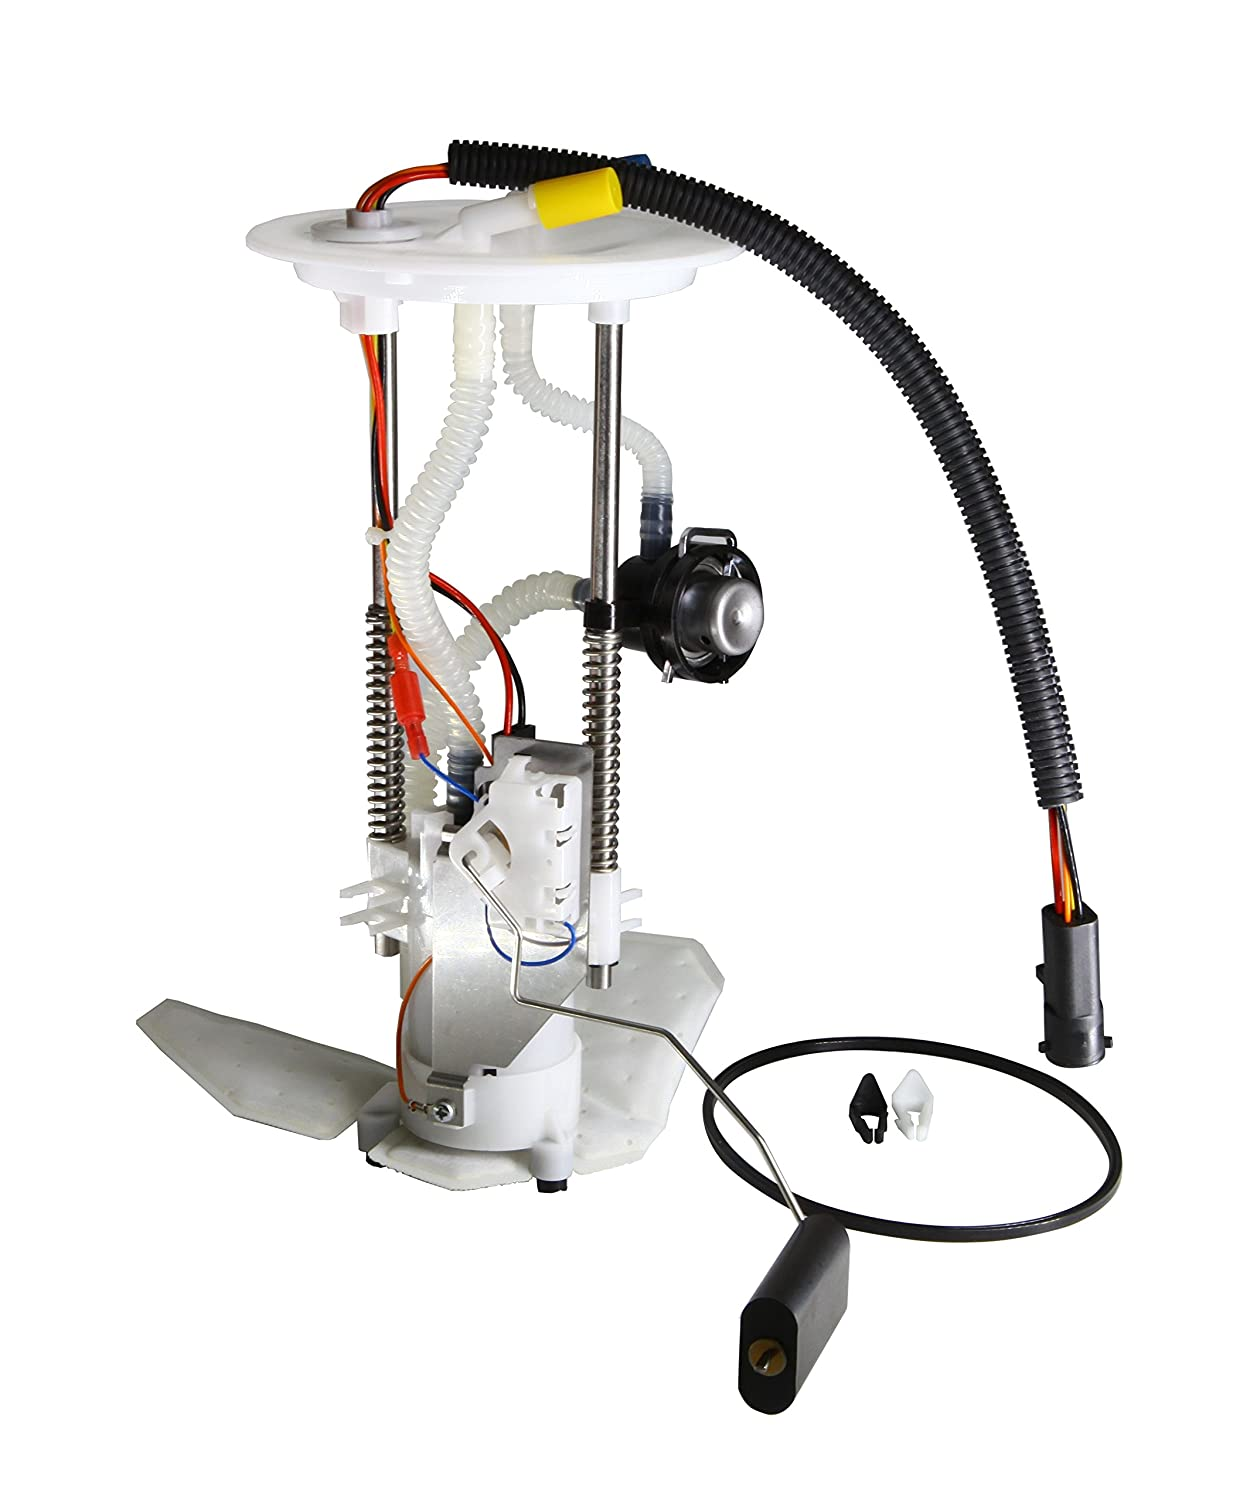 Amazon.com: TOPSCOPE FP76022M - Fuel Pump Module Assembly fits 2003 2004 Ford Expedition V8 5.4L E2360M: Automotive